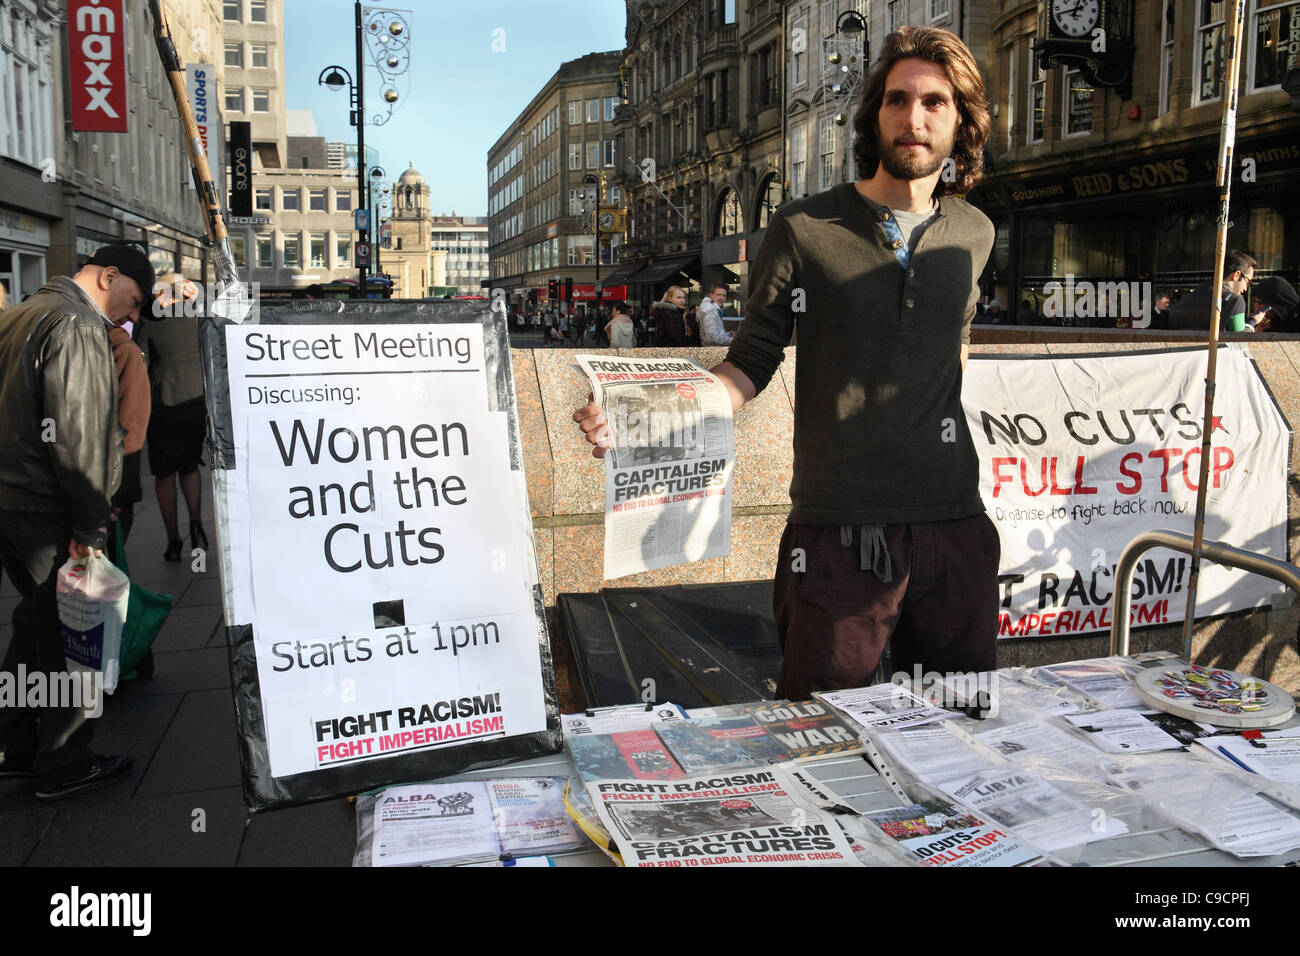 Young male political campaigner objecting to government cuts Newcastle, north east England UK - Stock Image